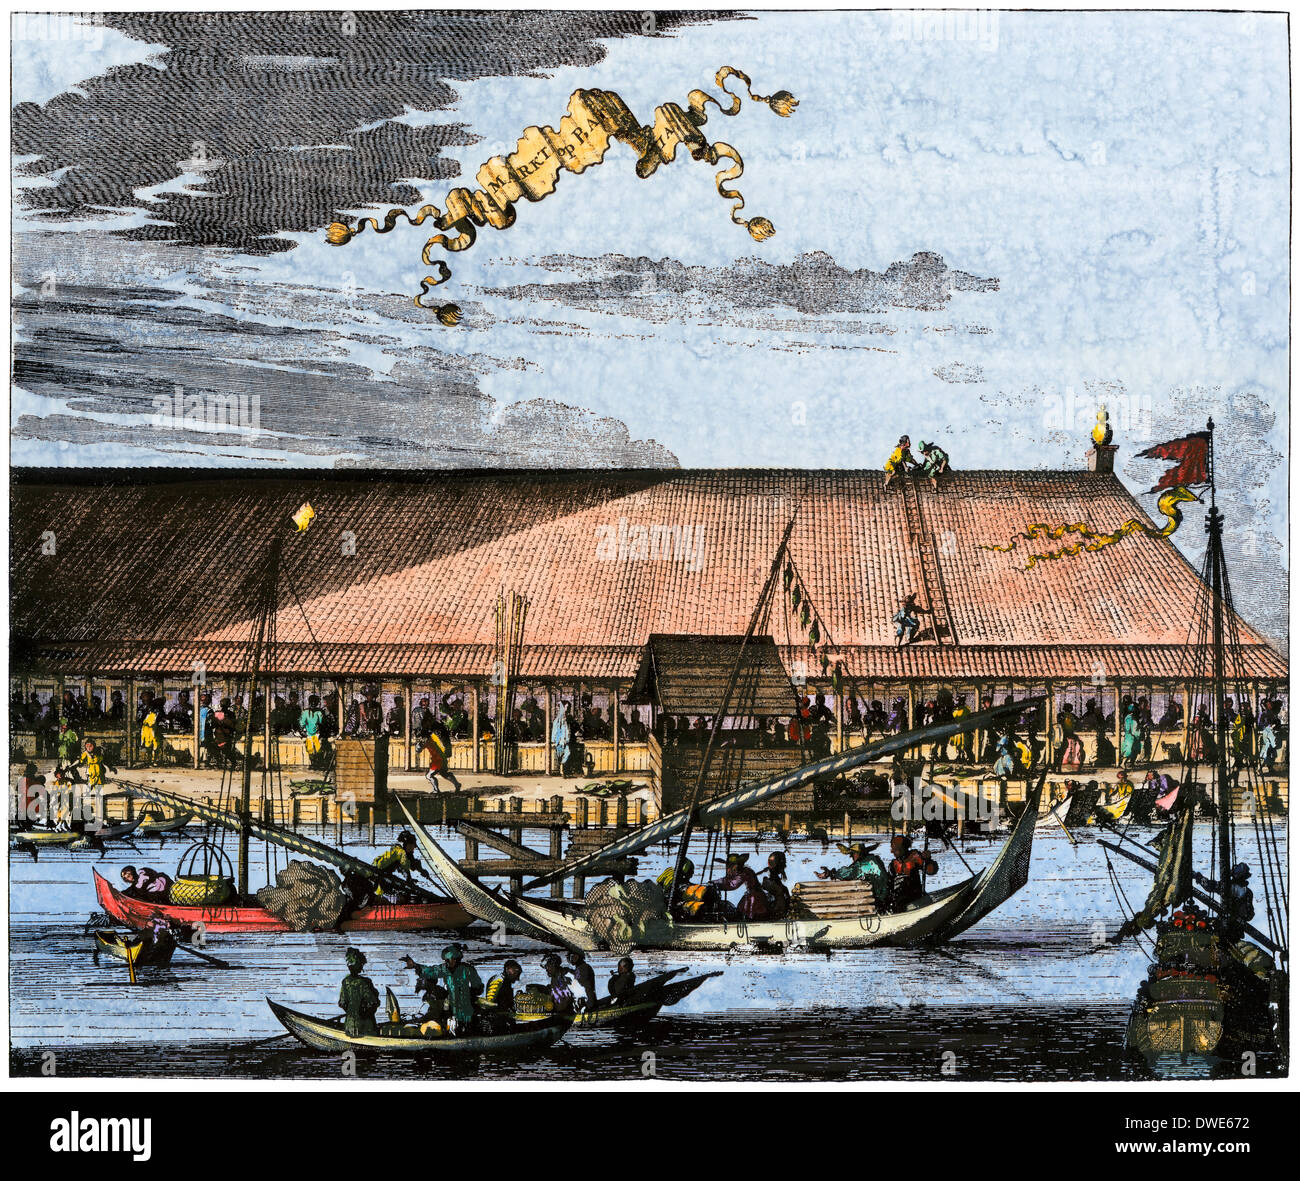 Market in Batavia (now Jakarta) in the 1600s, when Java was a Dutch colony. Hand-colored print - Stock Image